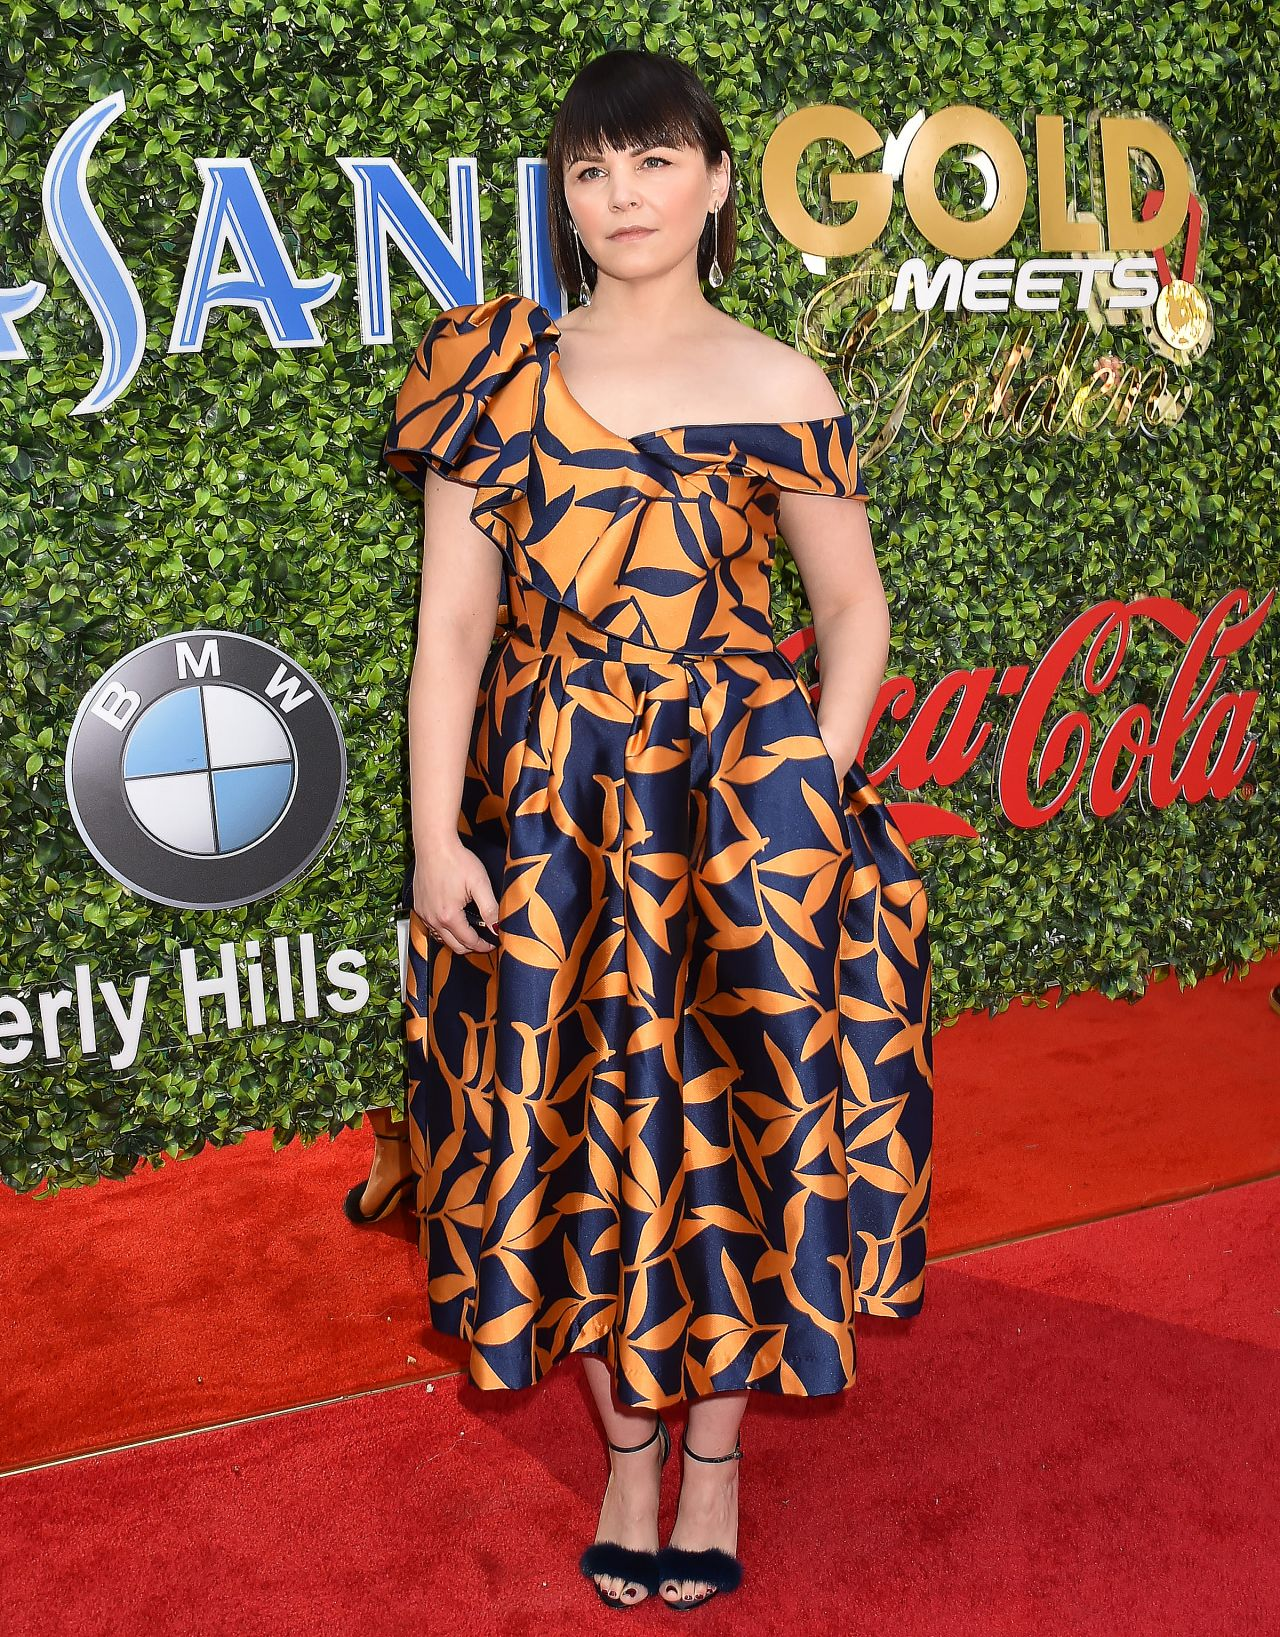 ginnifer-goodwin-in-khoon-hooi-2020-gold-meets-golden-brunch-event